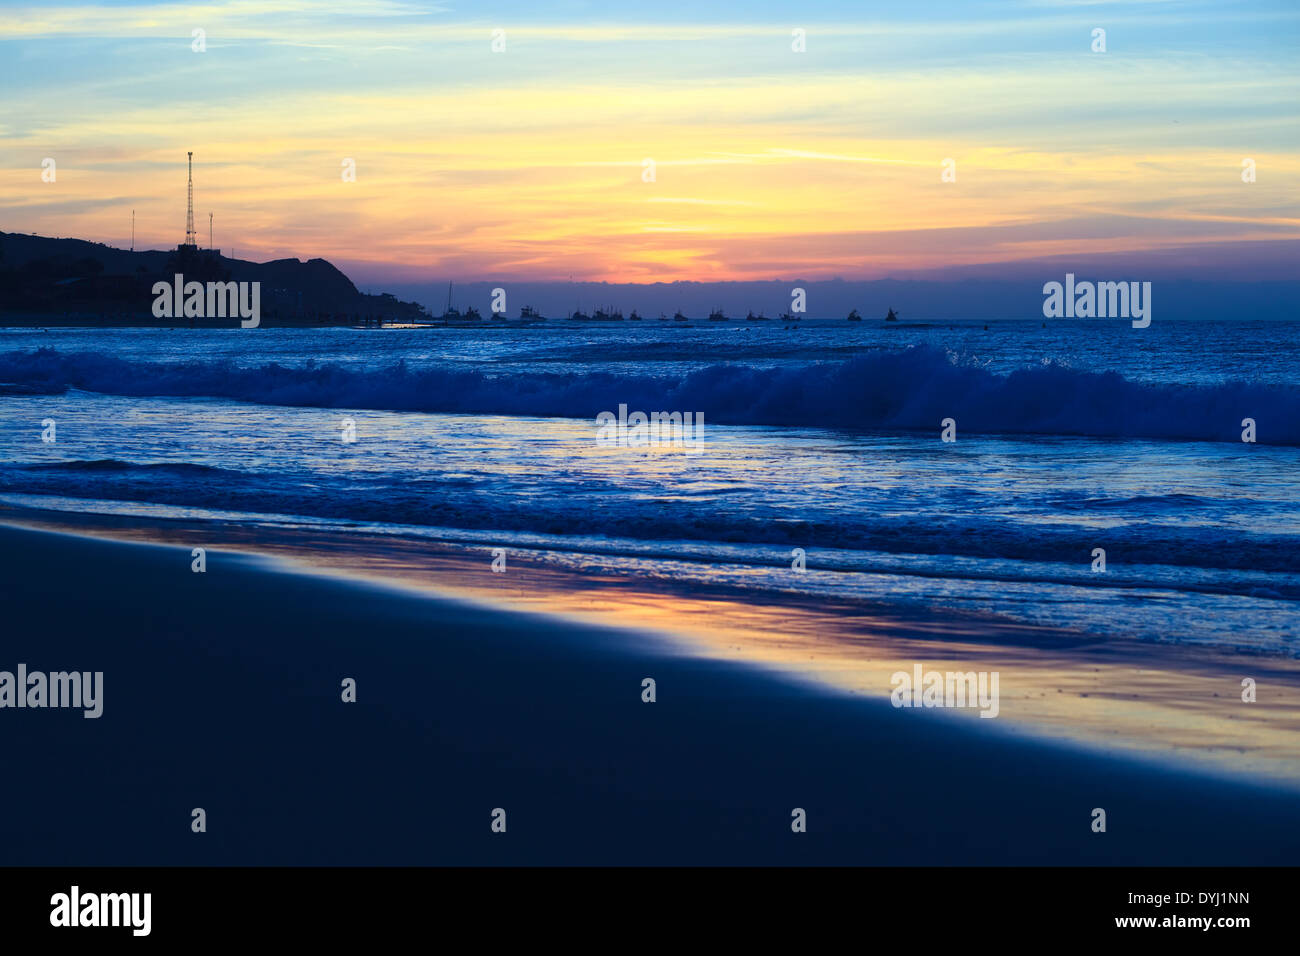 The sandy beach of Mancora in Peru shortly after sunset - Stock Image